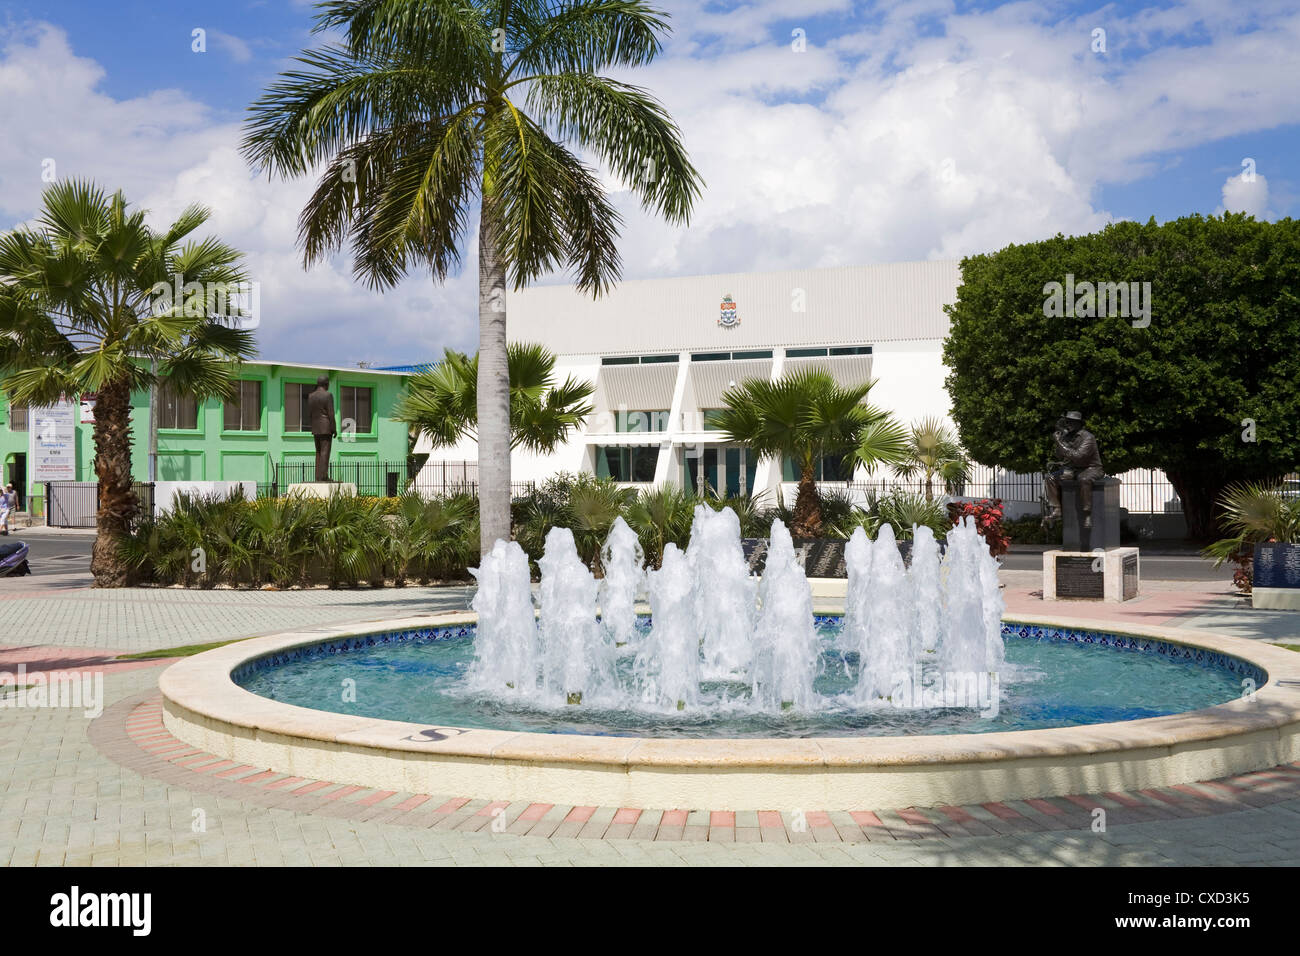 Heroes Square in George Town, Grand Cayman, Cayman Islands, Greater Antilles, West Indies, Caribbean, Central America - Stock Image